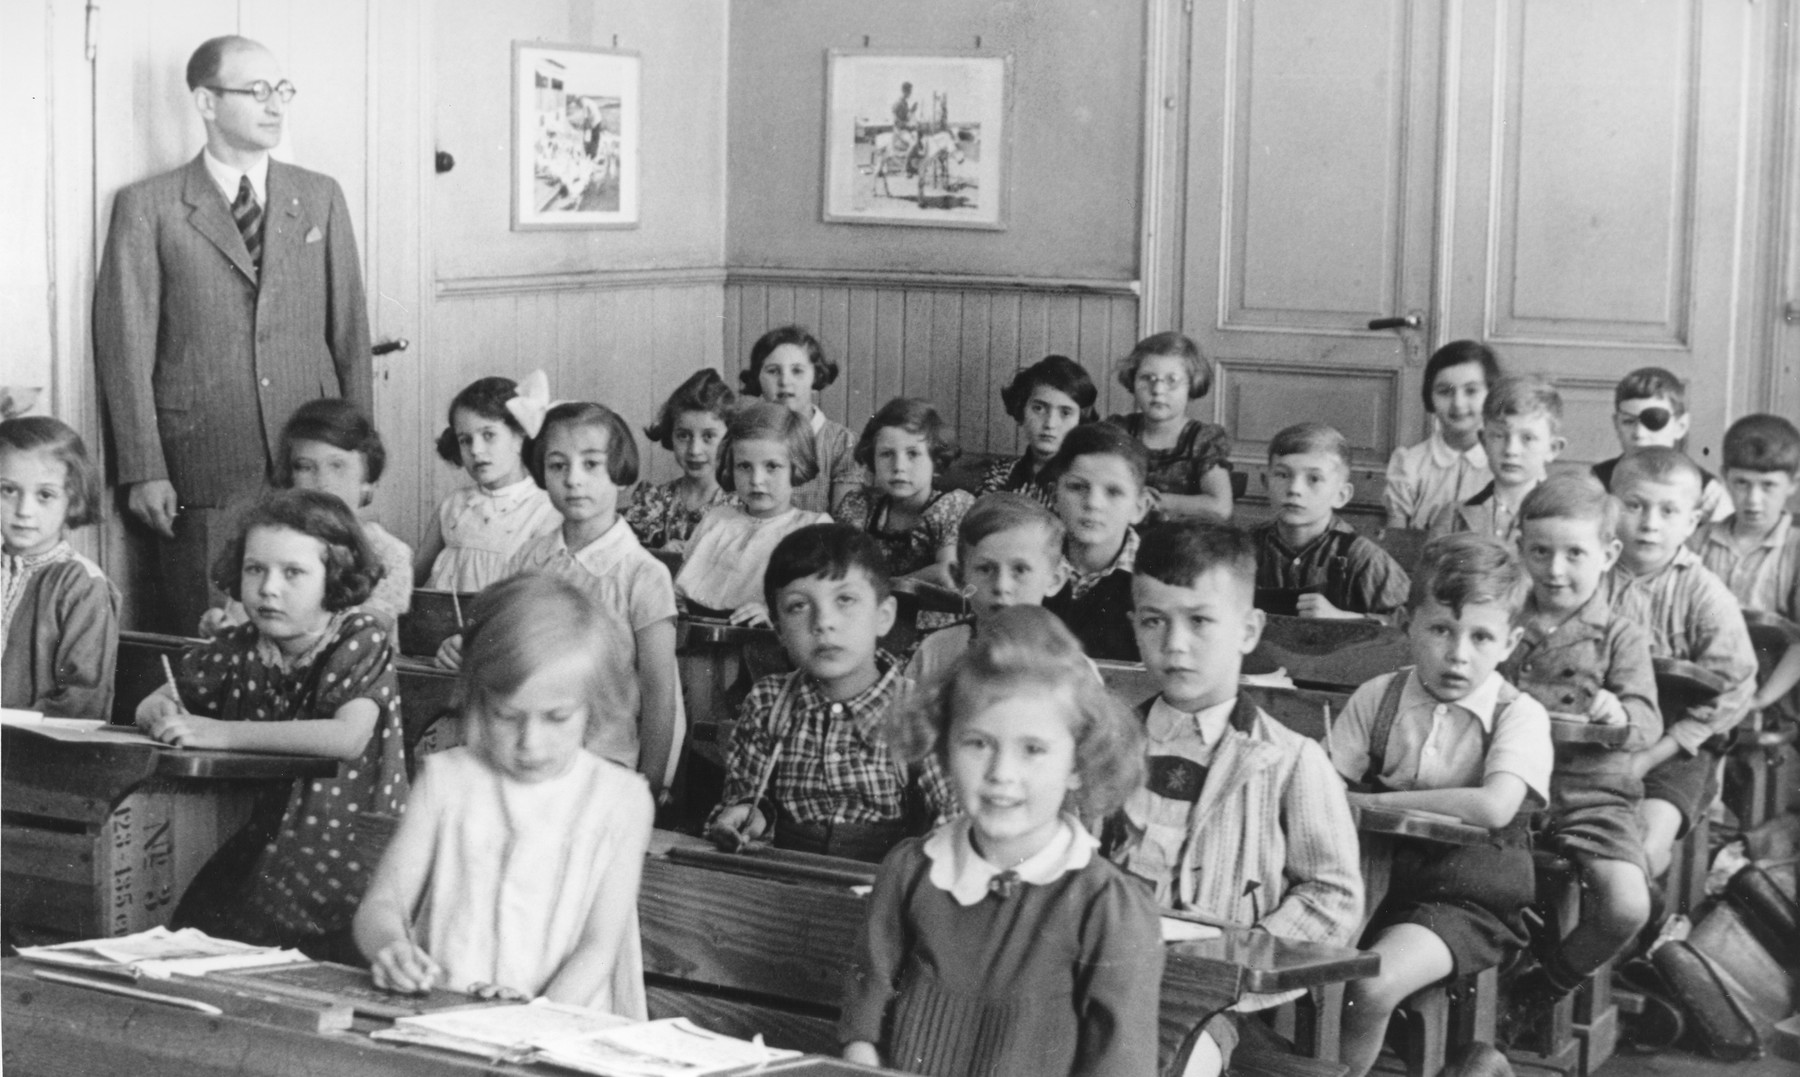 Young children study in a classroom at a Jewish school in Kassel, Germany during the Third Reich.   Among those pictured are: the teacher Willi Katz, Dorrith Oppenheim (far left) and Heinz Westheim (fifth horizontal row from the front, right side).